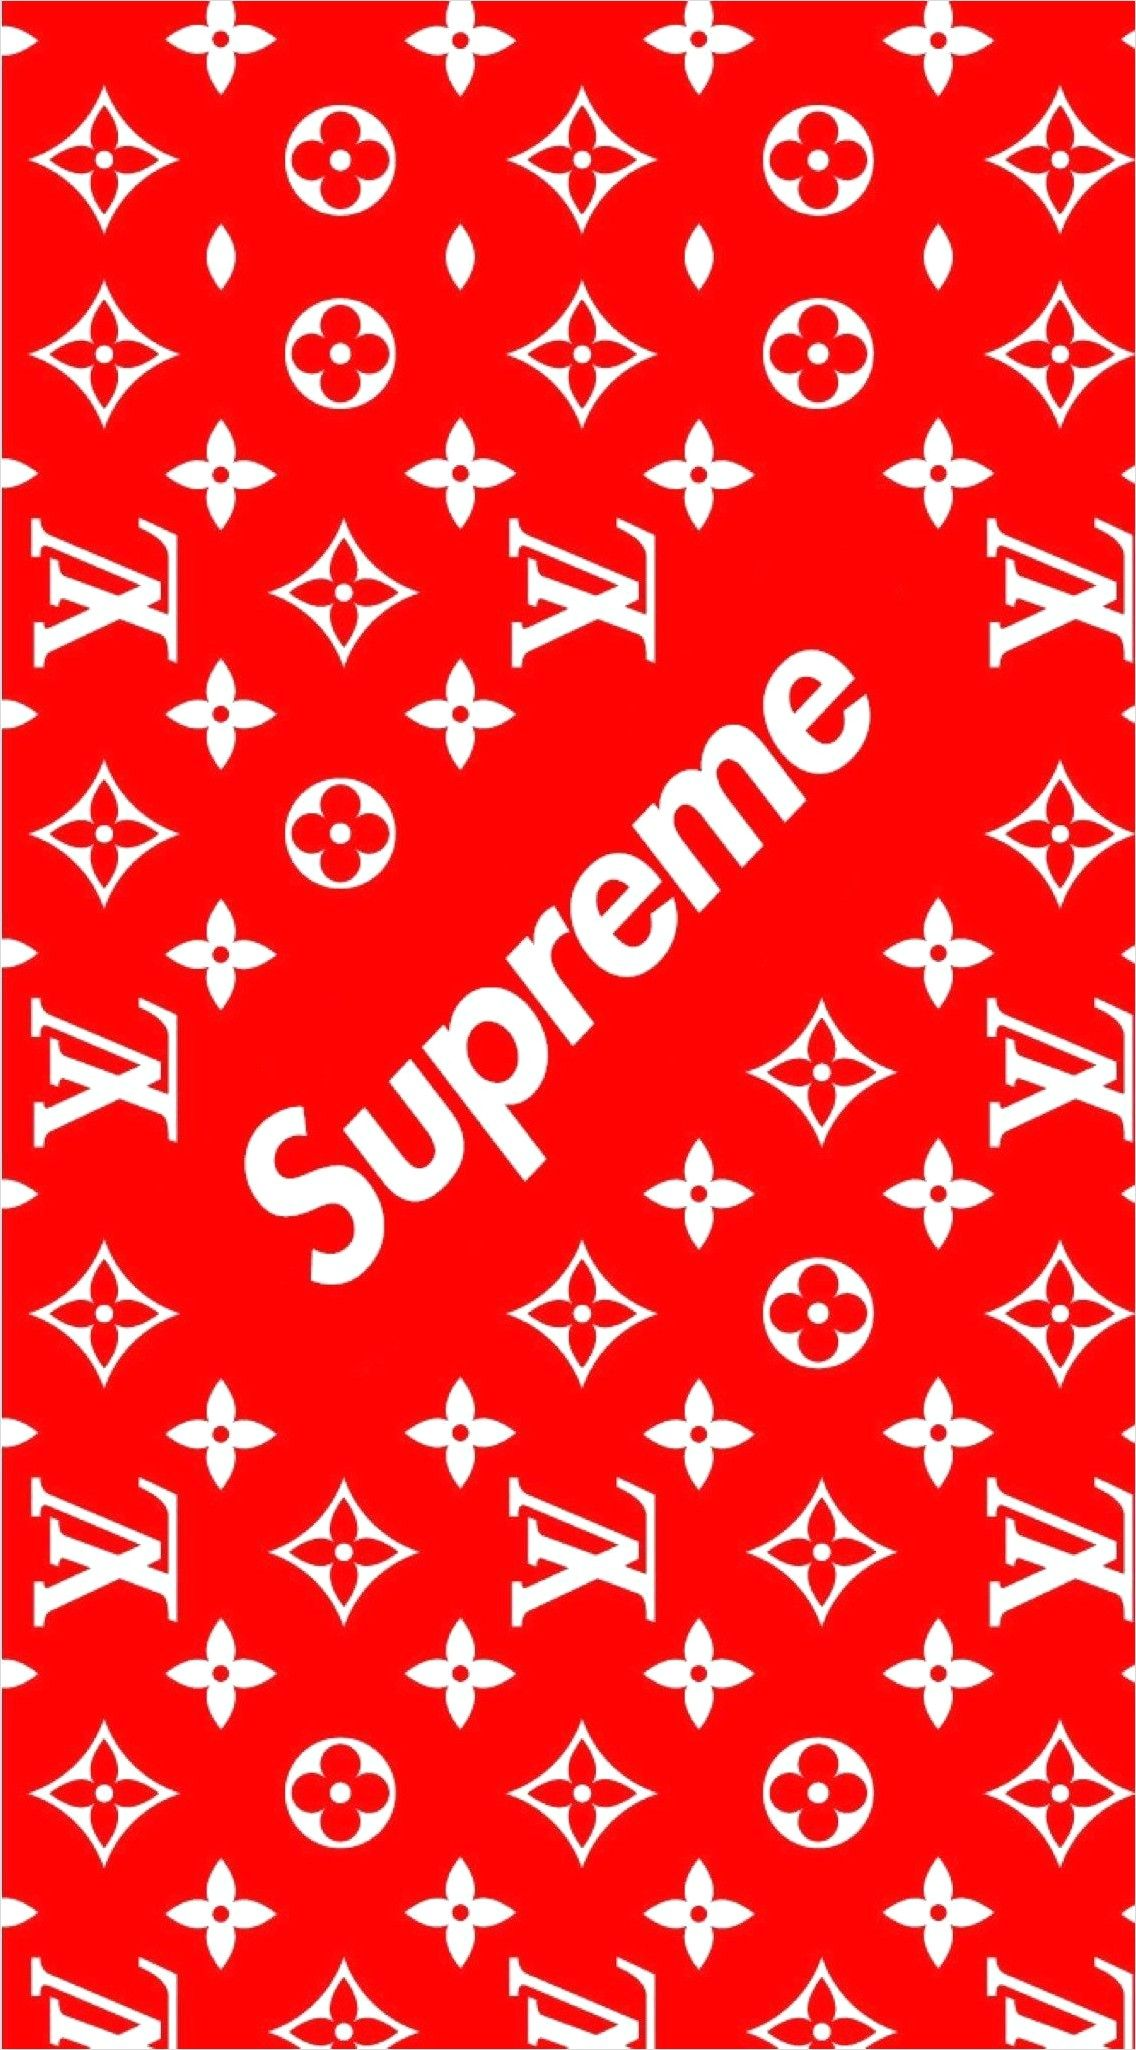 4k Louis Vuitton Wallpaper Red And Black In 2020 Supreme Wallpaper Louis Vuitton Iphone Wallpaper Supreme Iphone Wallpaper